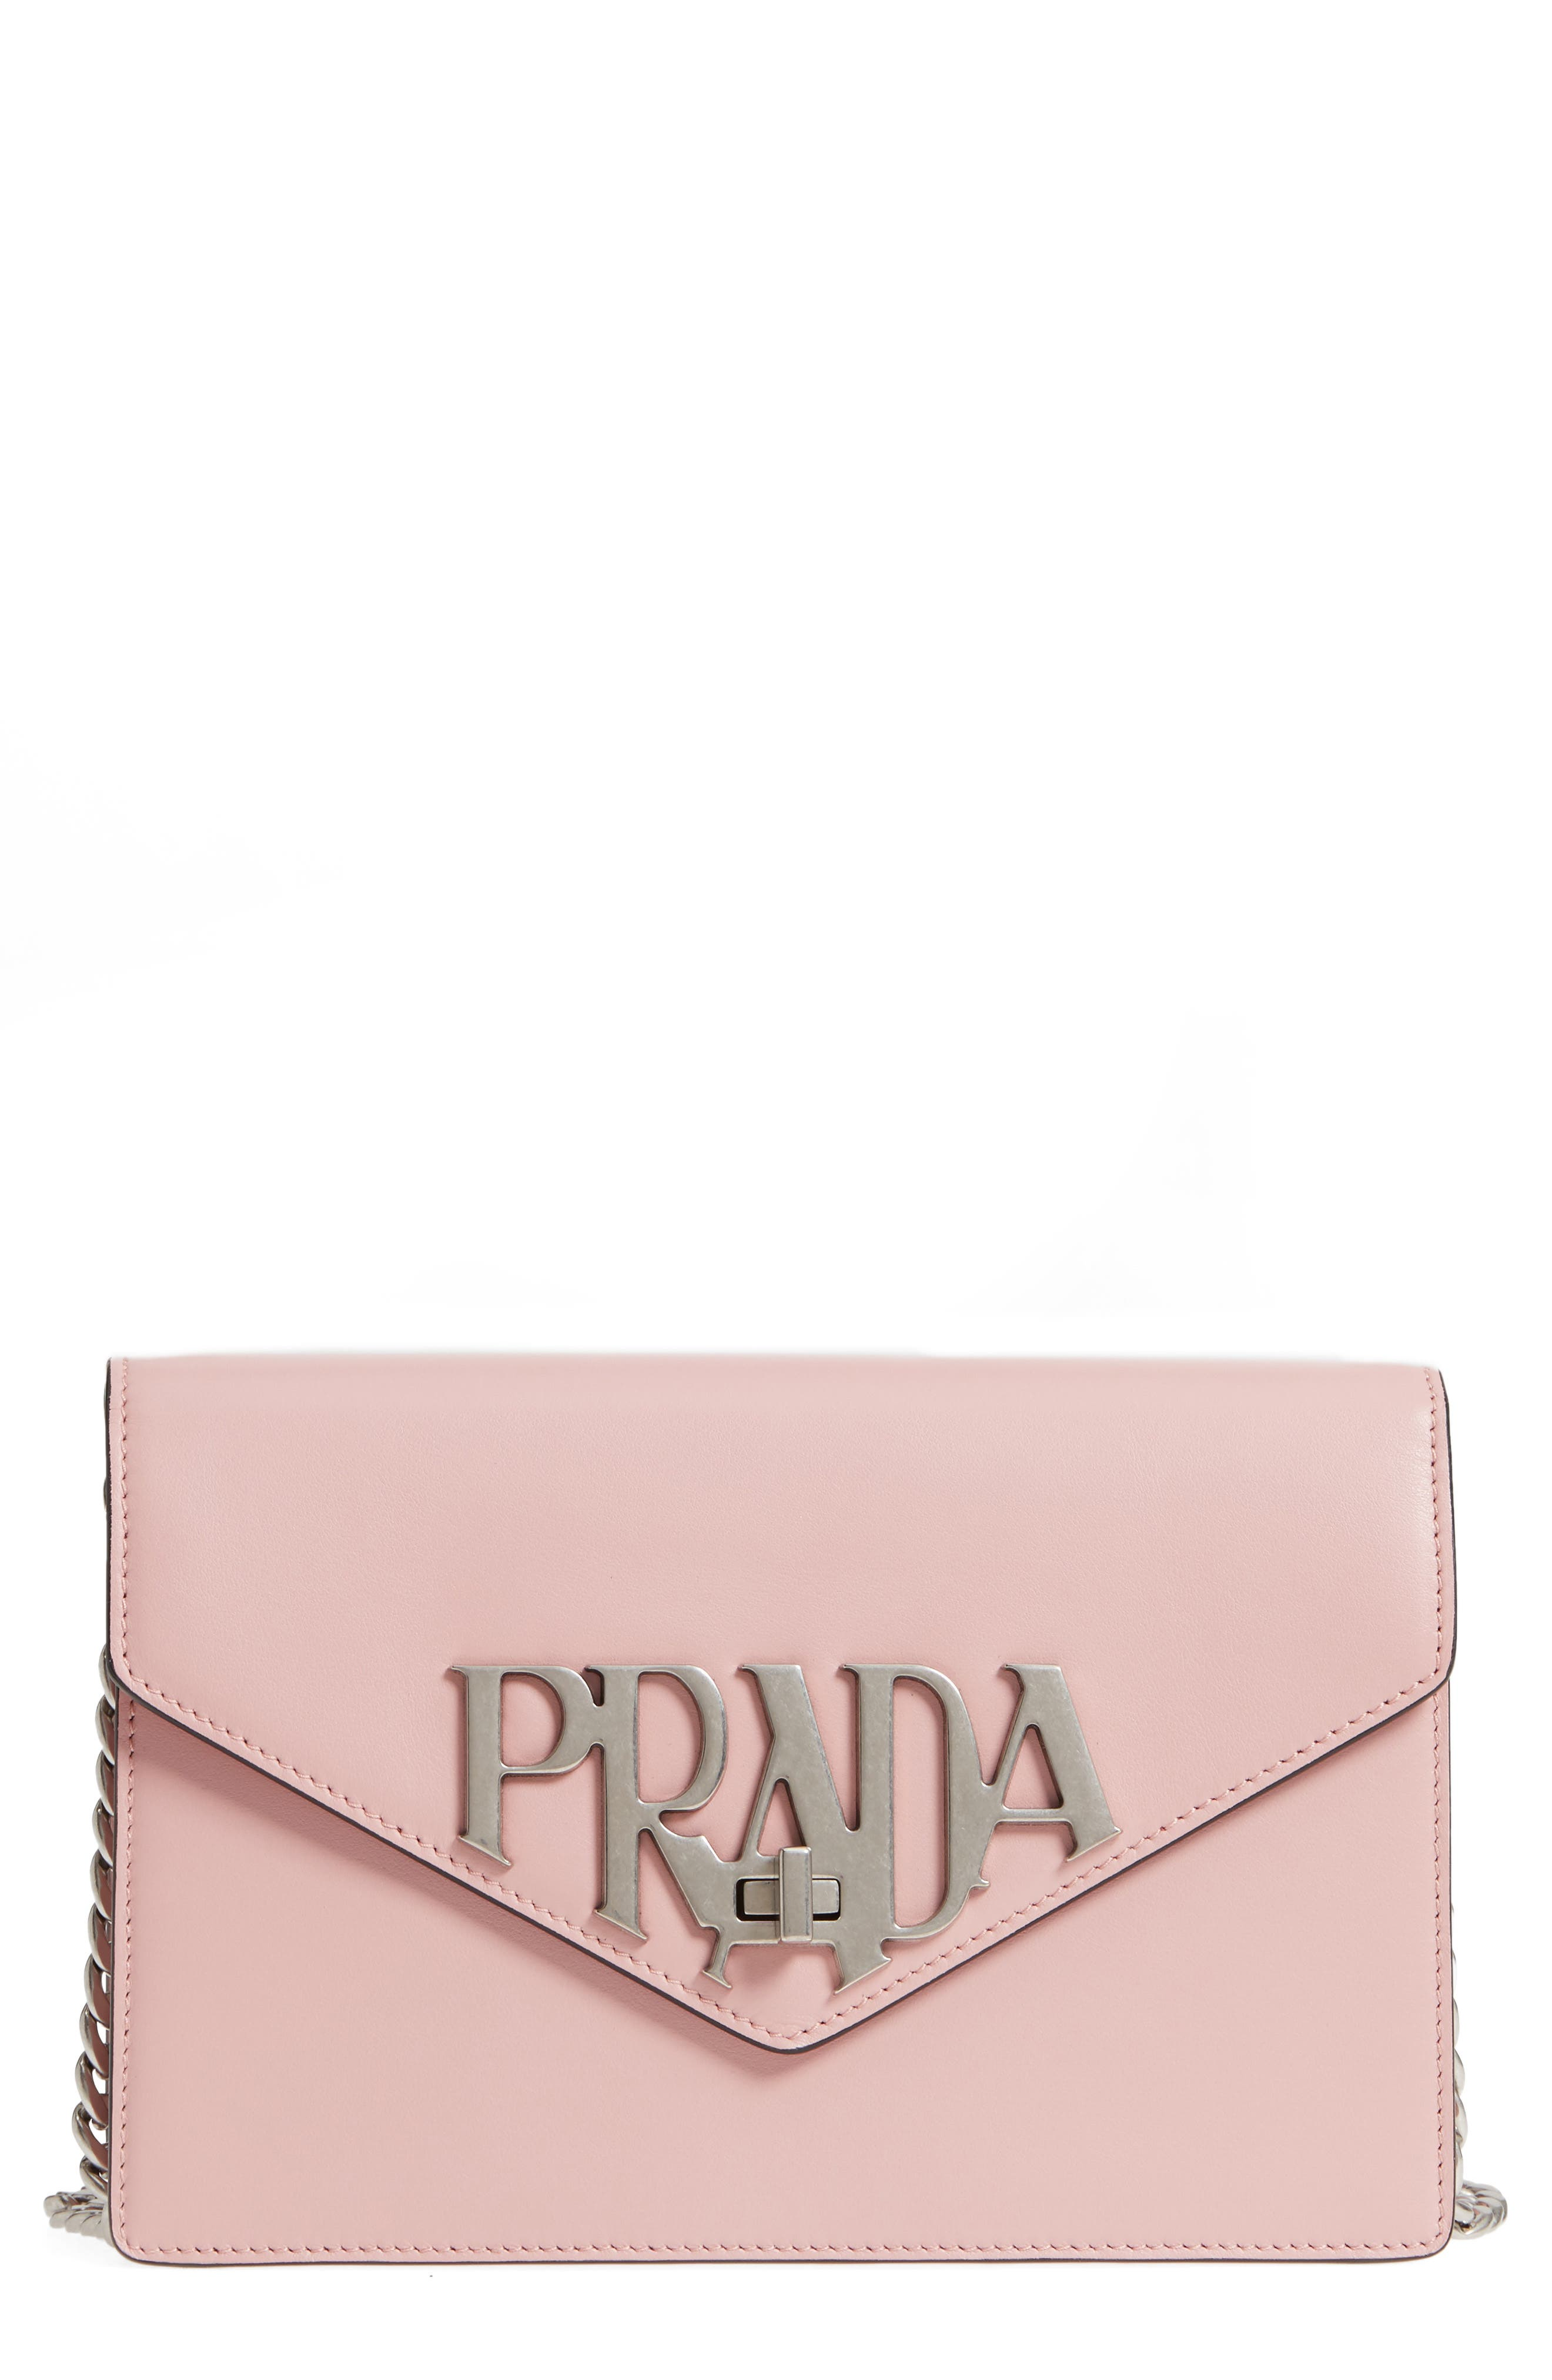 Prada Deco Flap Calfskin Leather Clutch